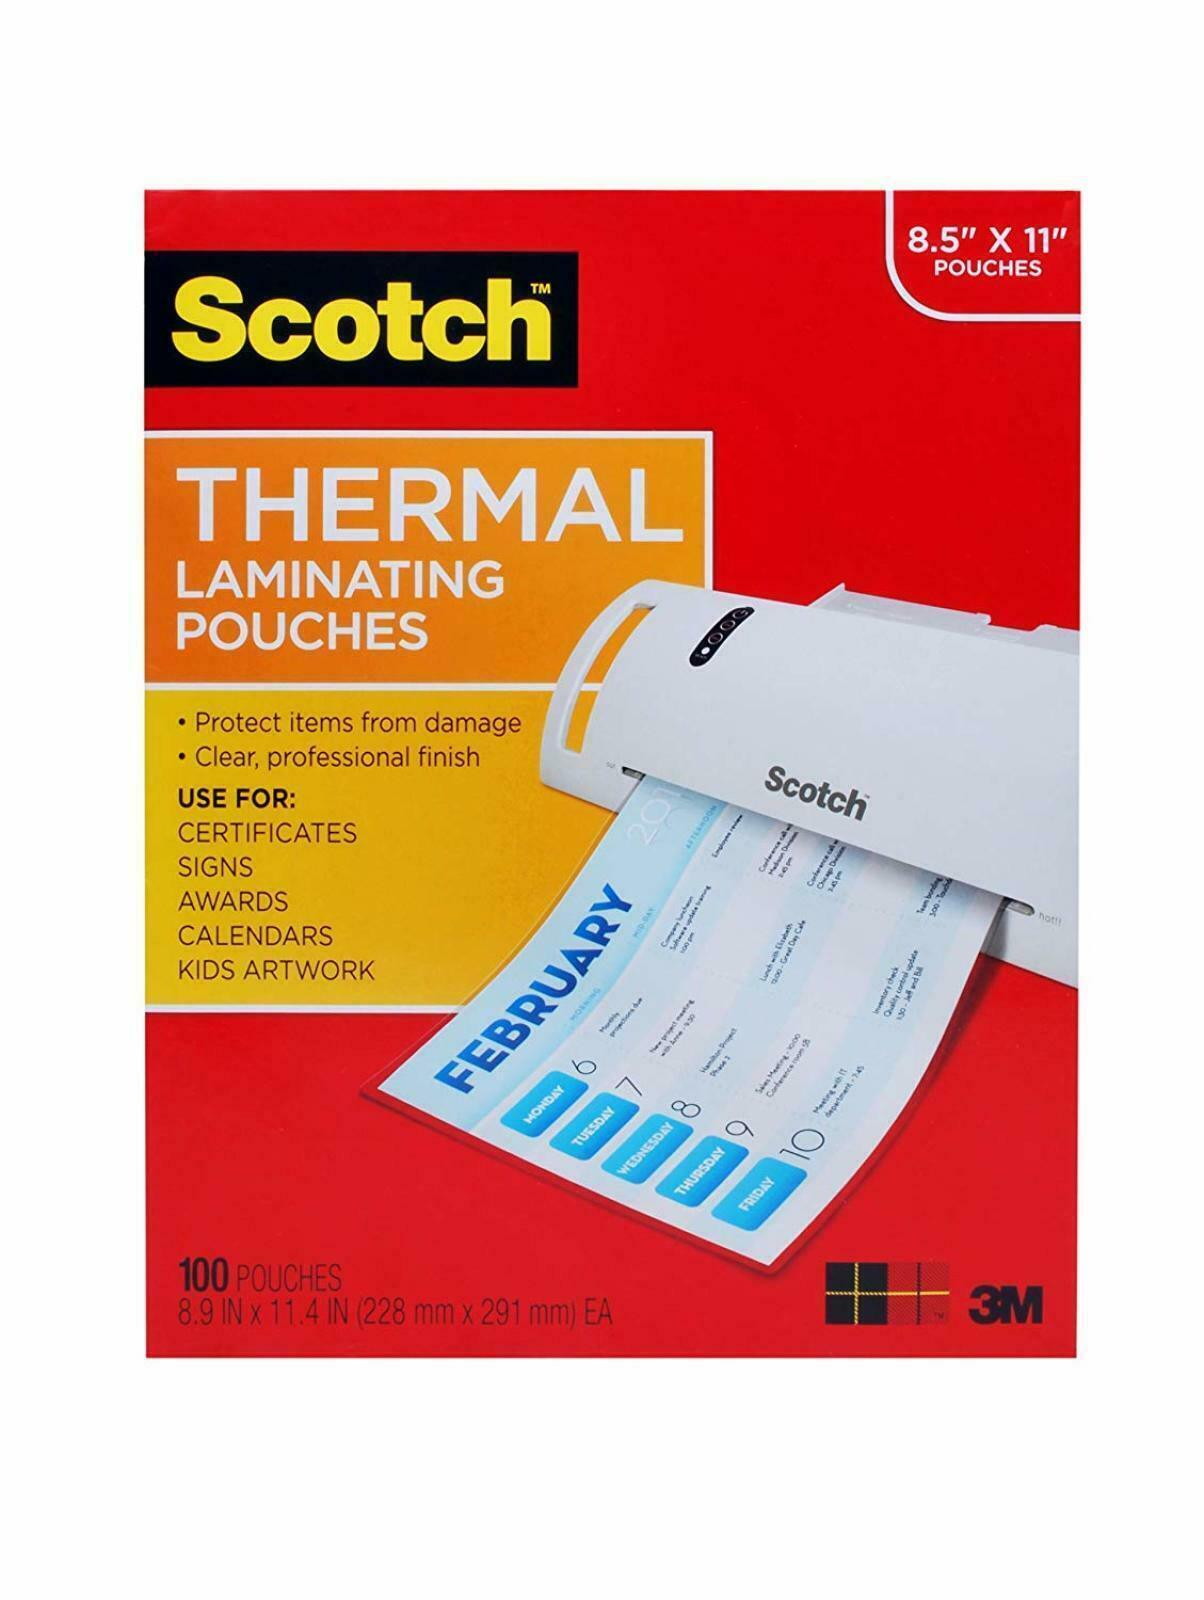 100-Pack Pack of 2 Letter Size Sheets 8.9 x 11.4 inches TP3854-100 Scotch Thermal Laminating Pouches